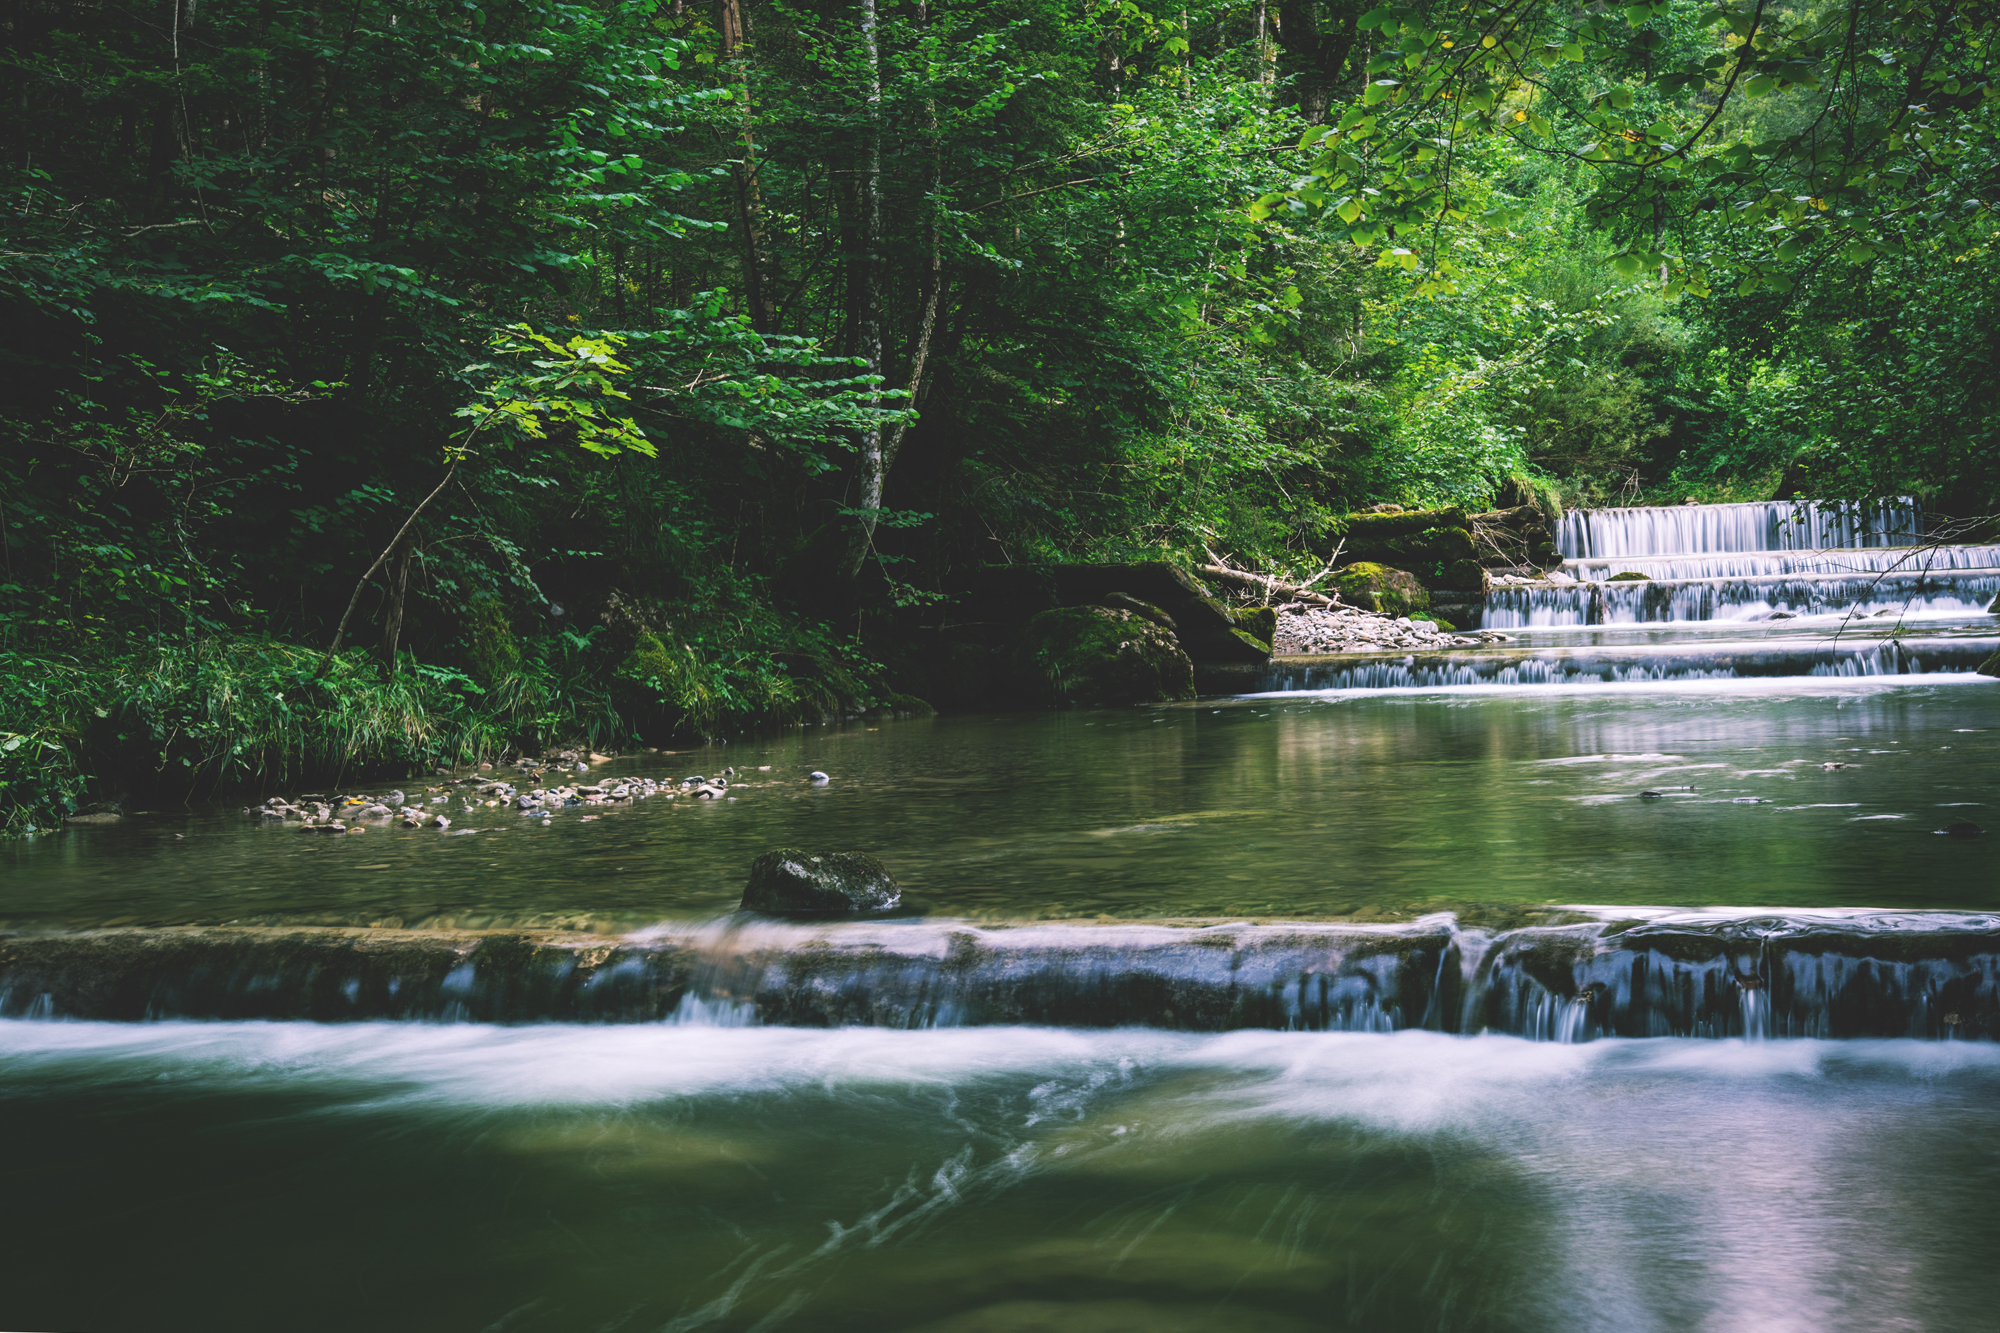 Visualize this serene peaceful stream running over stones in lush green woods for pain management